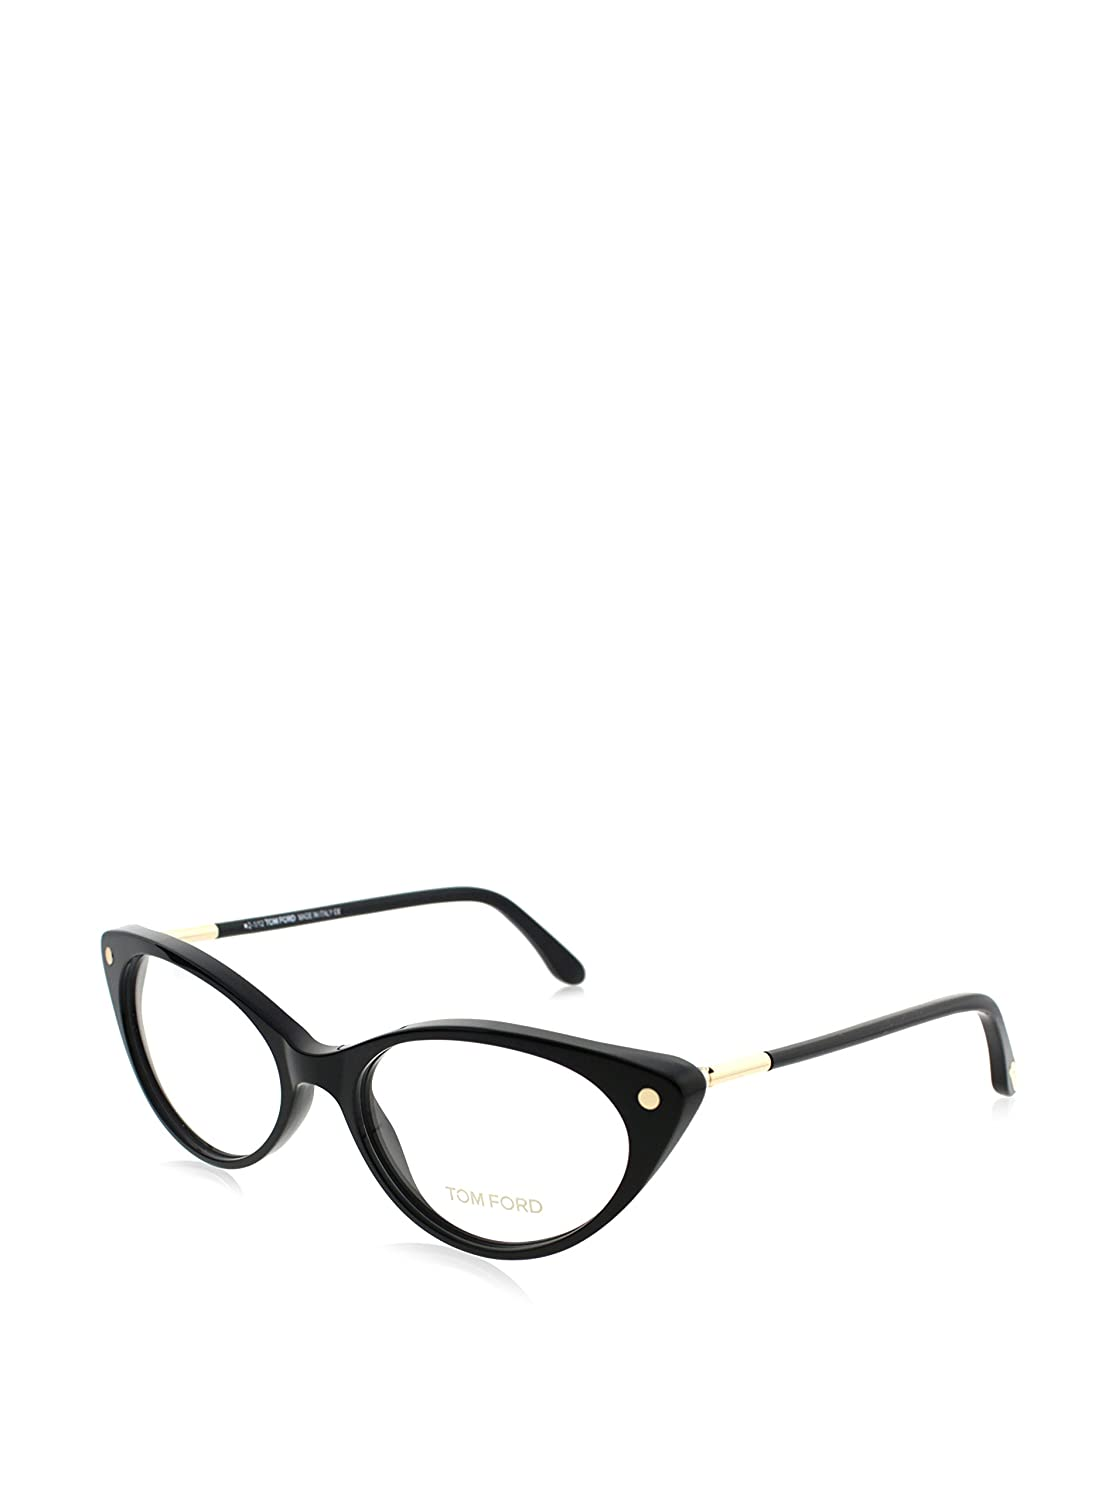 e6b217253d Amazon.com  Tom Ford Women s FT5189 001 Cat-Eye Eyeglass Frames ...